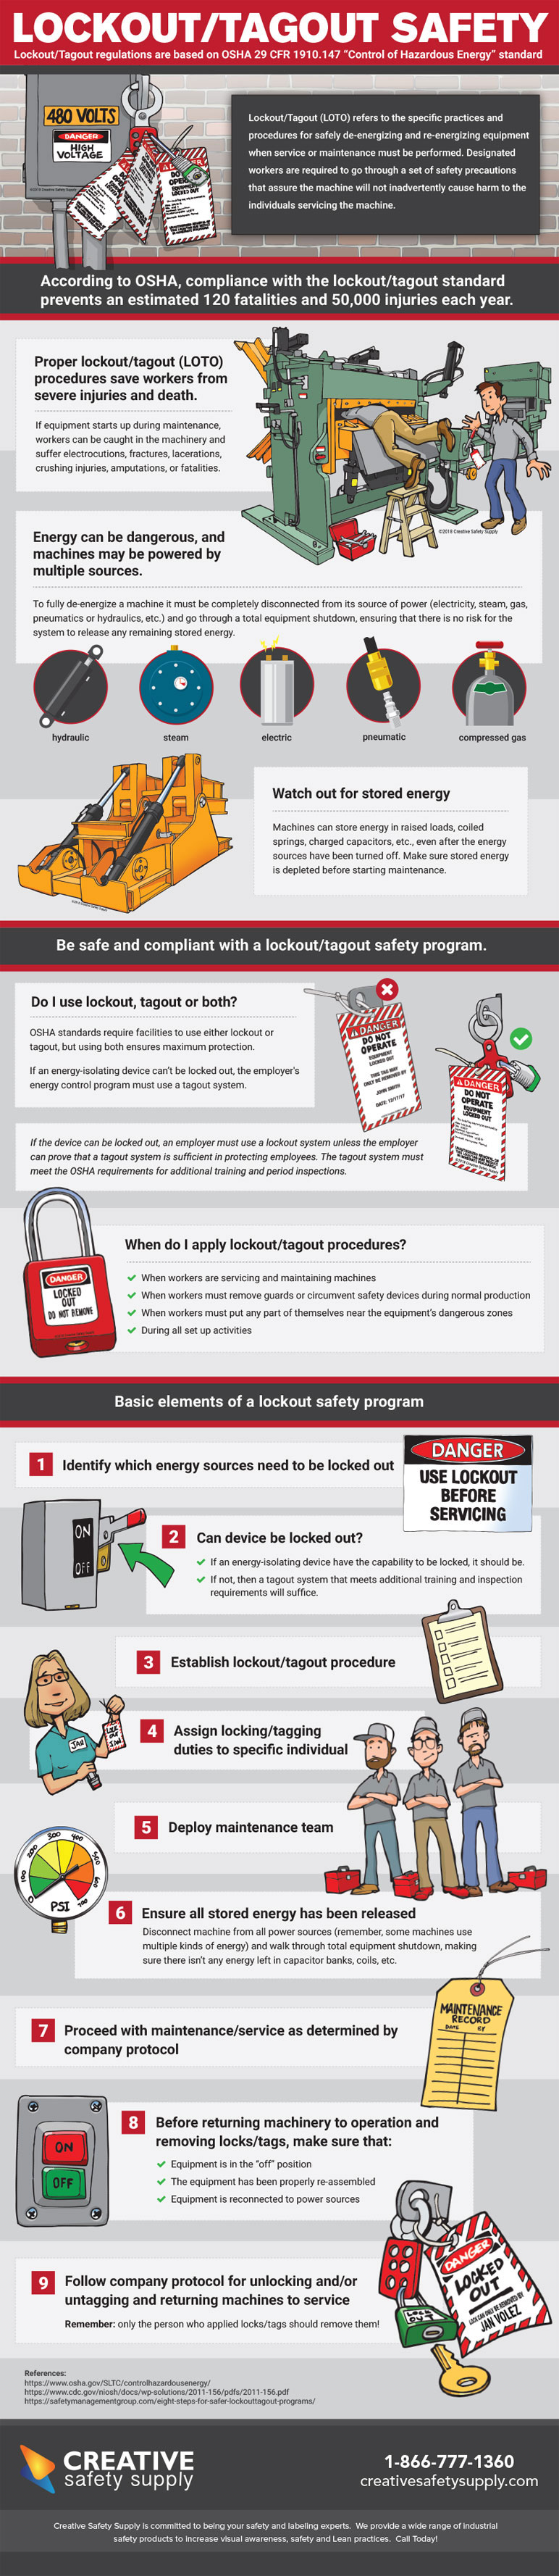 Lockout/Tagout Safety #infographic #Workplace Safety #Workplace #infographics #OSHA #Lockout Tagout #Safety